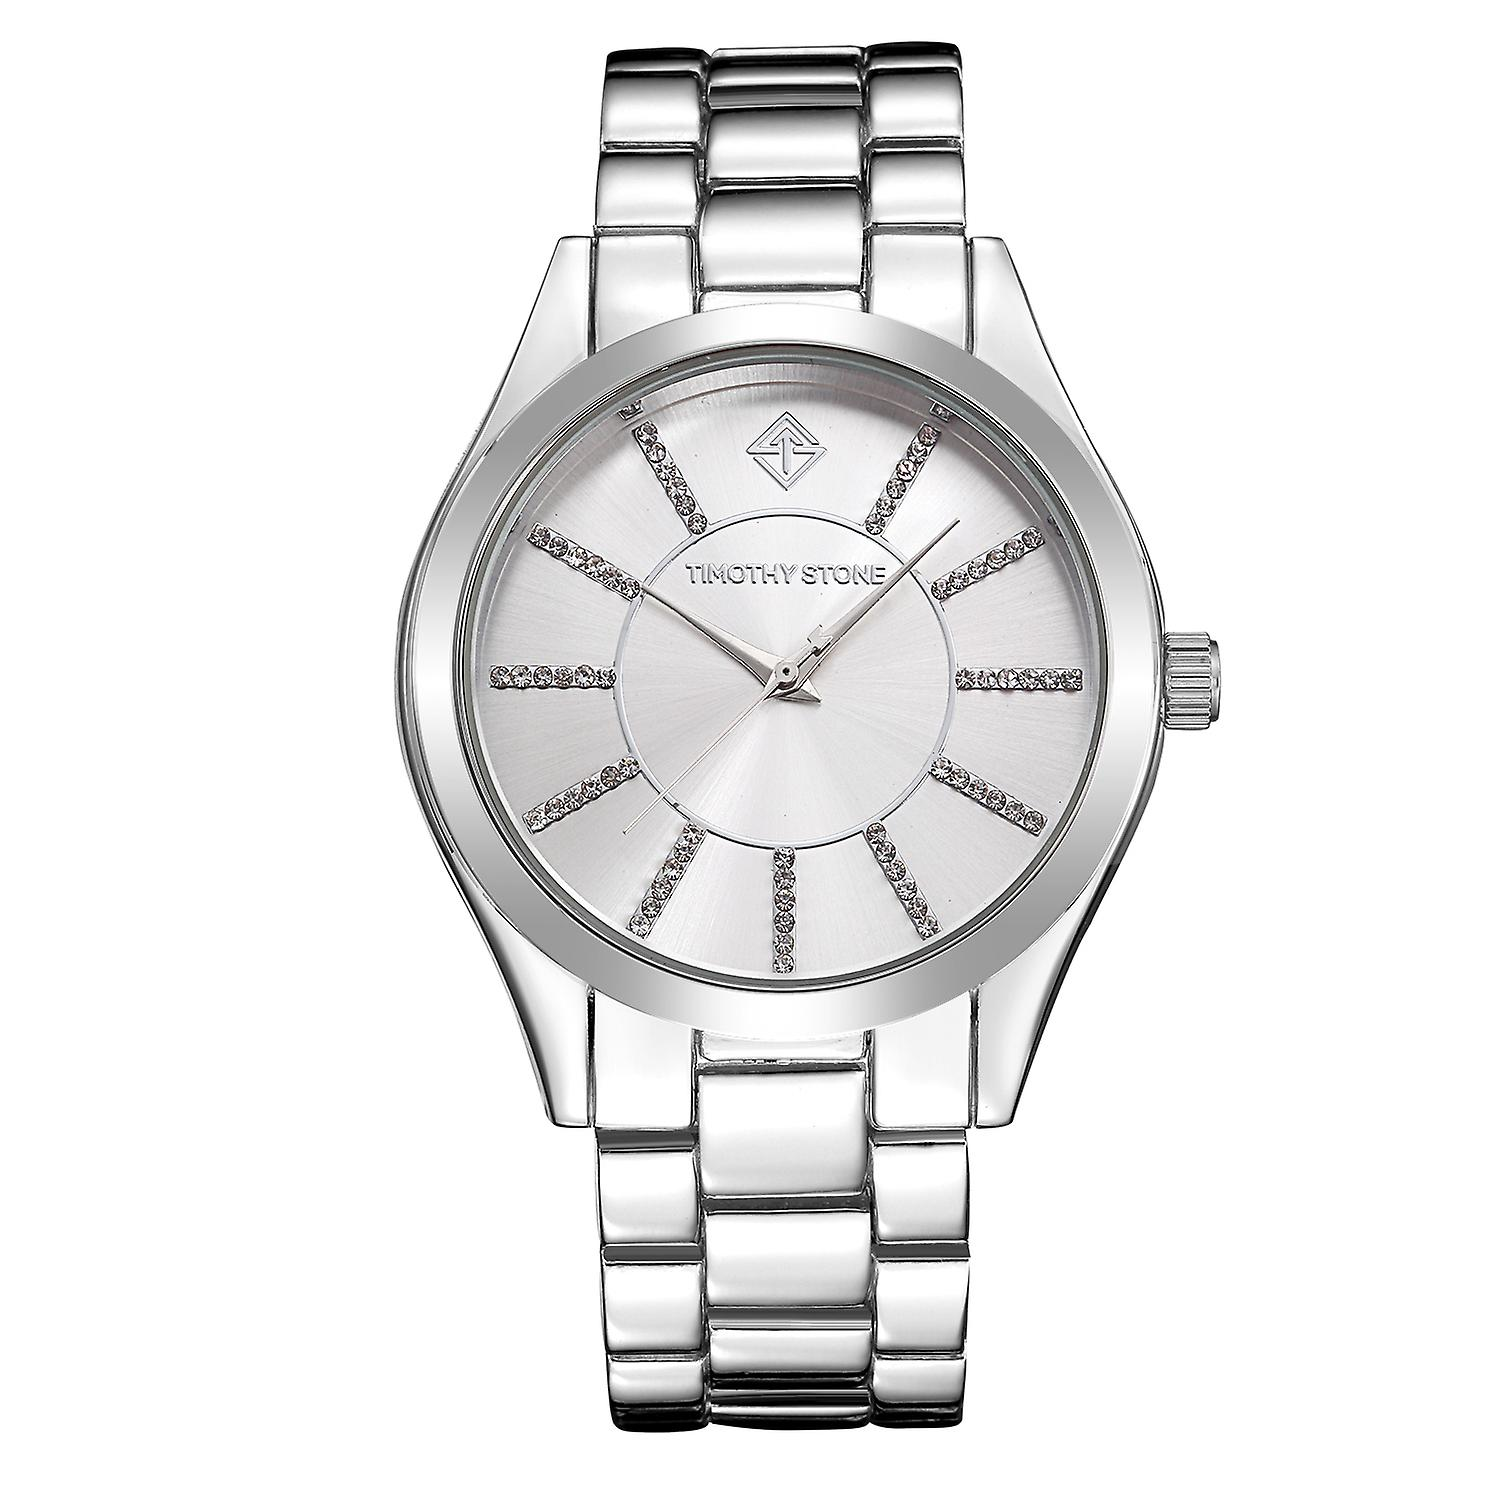 Timothy Stone Women's CHARME-STAINLESS Silver-Tone Watch